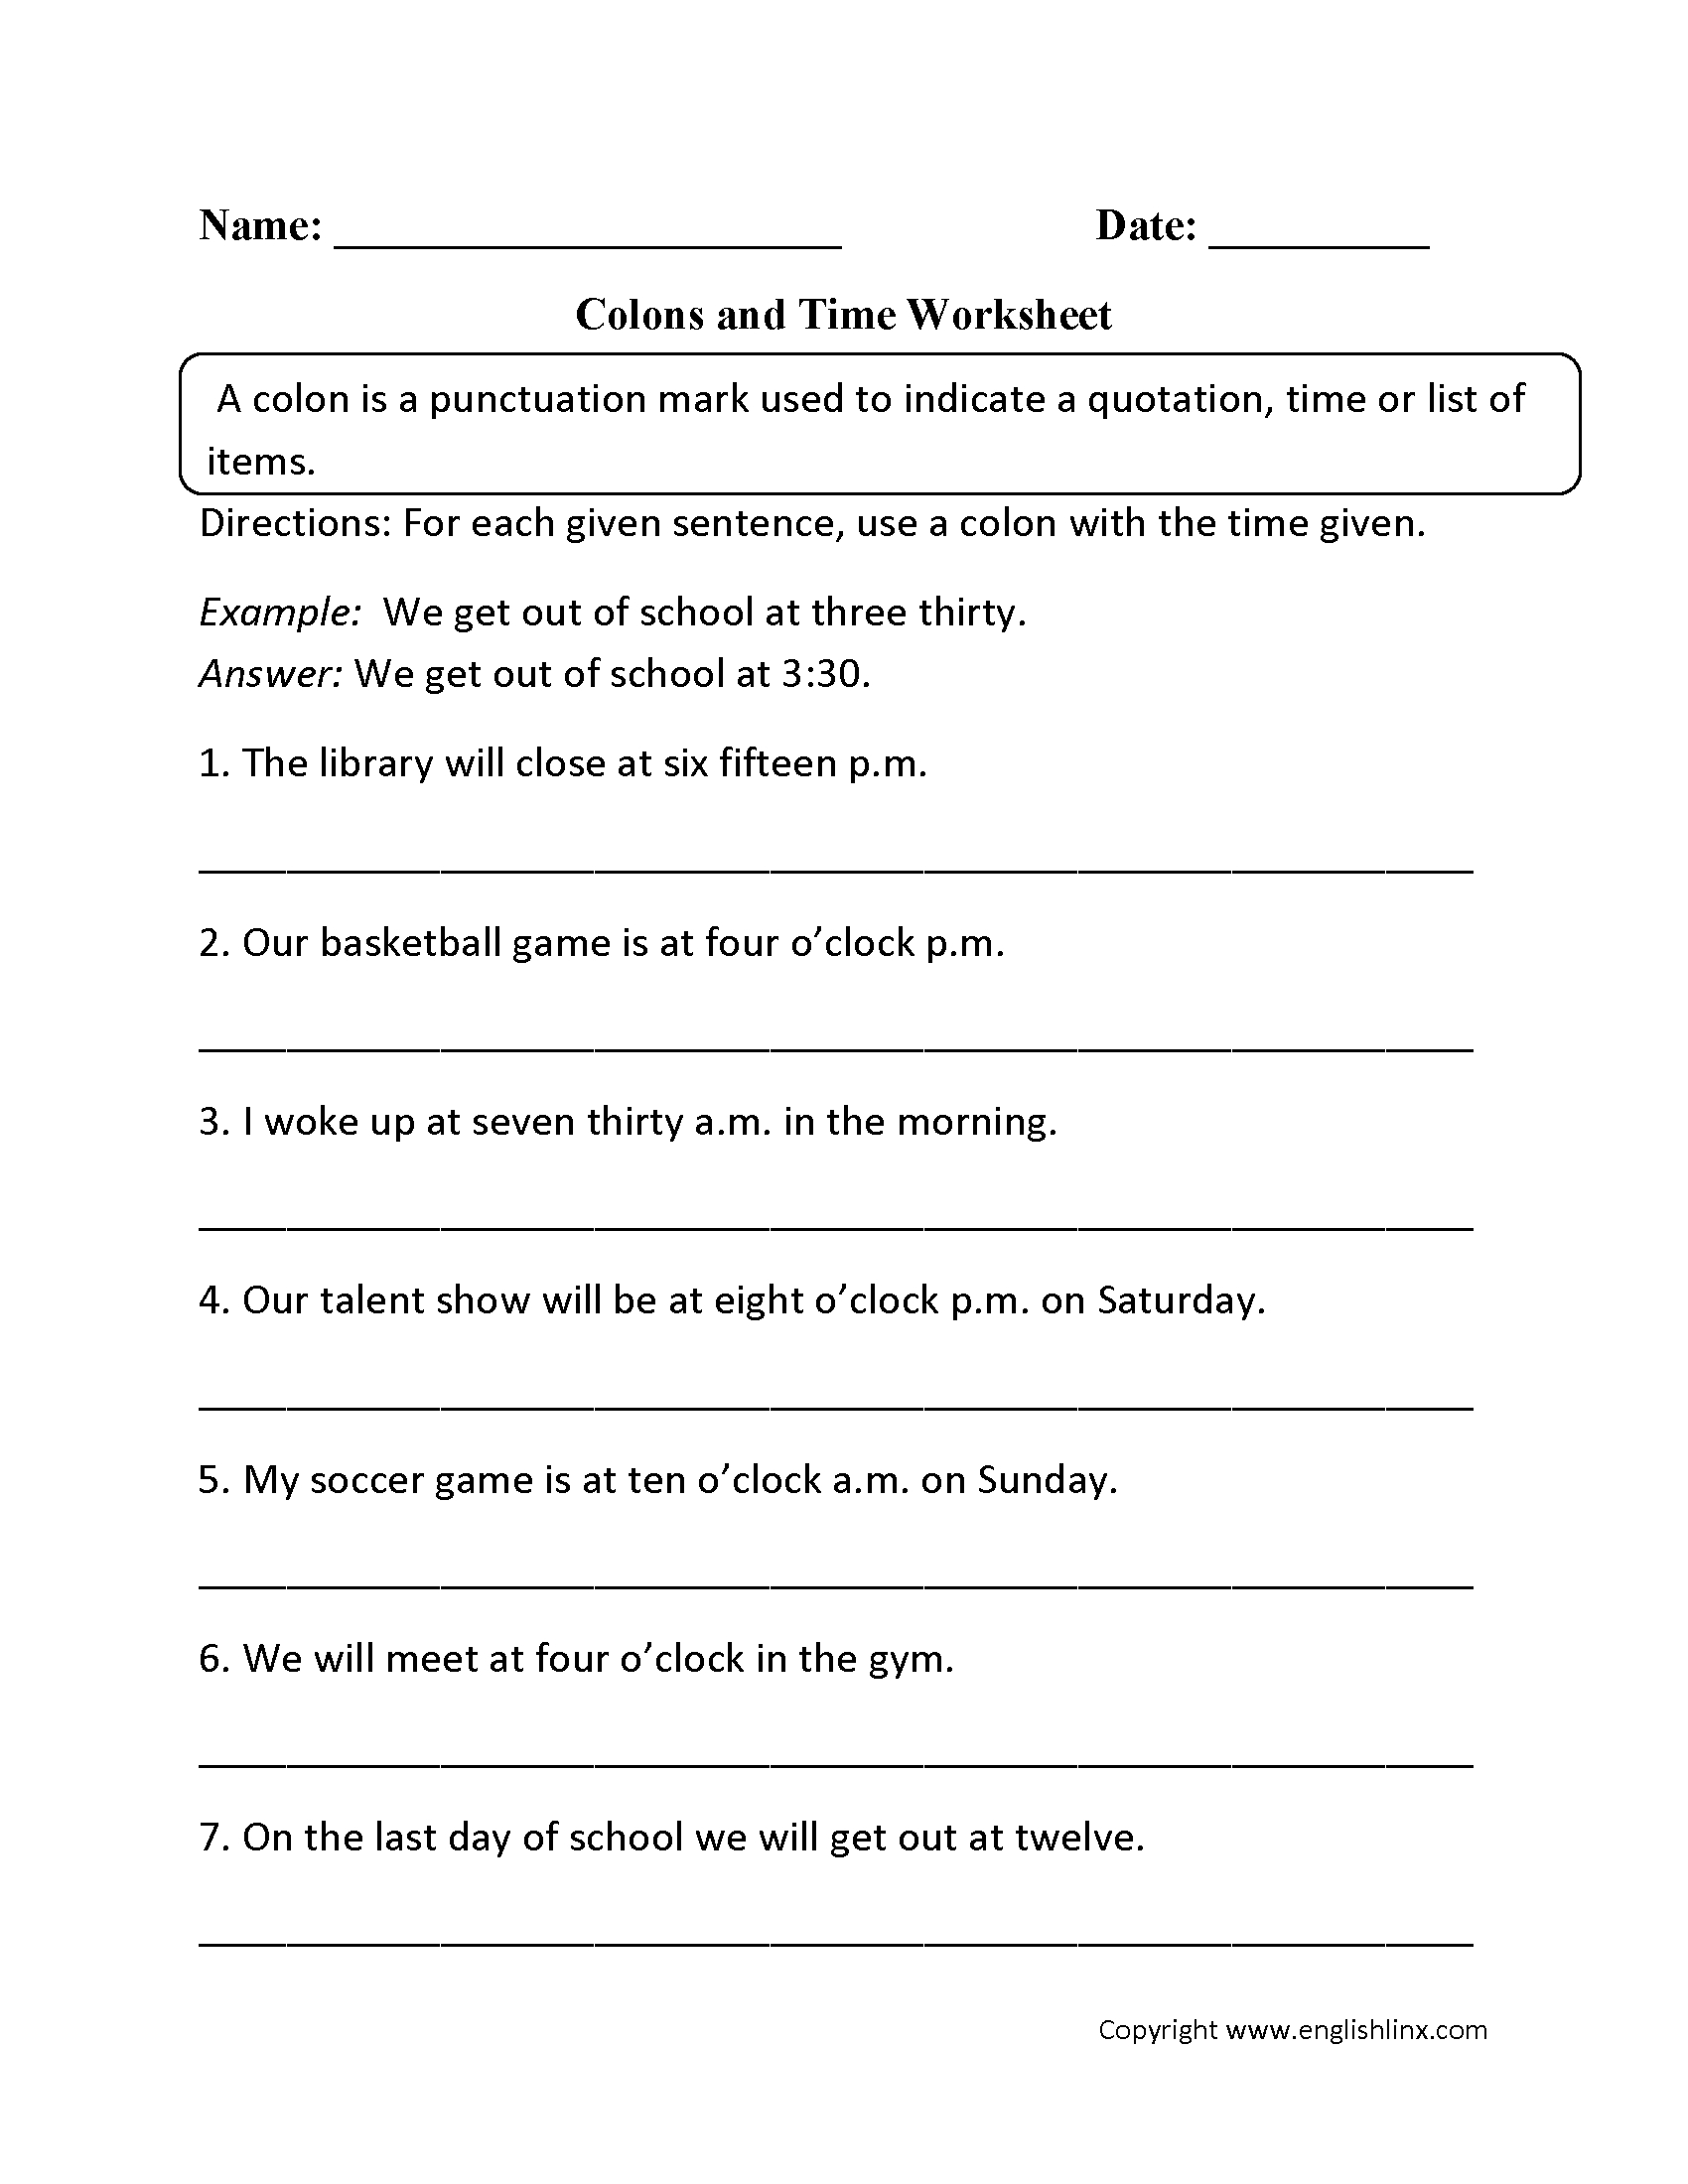 Punctuation Worksheets | Colon Worksheets - Free Printable Grammar Worksheets For Highschool Students